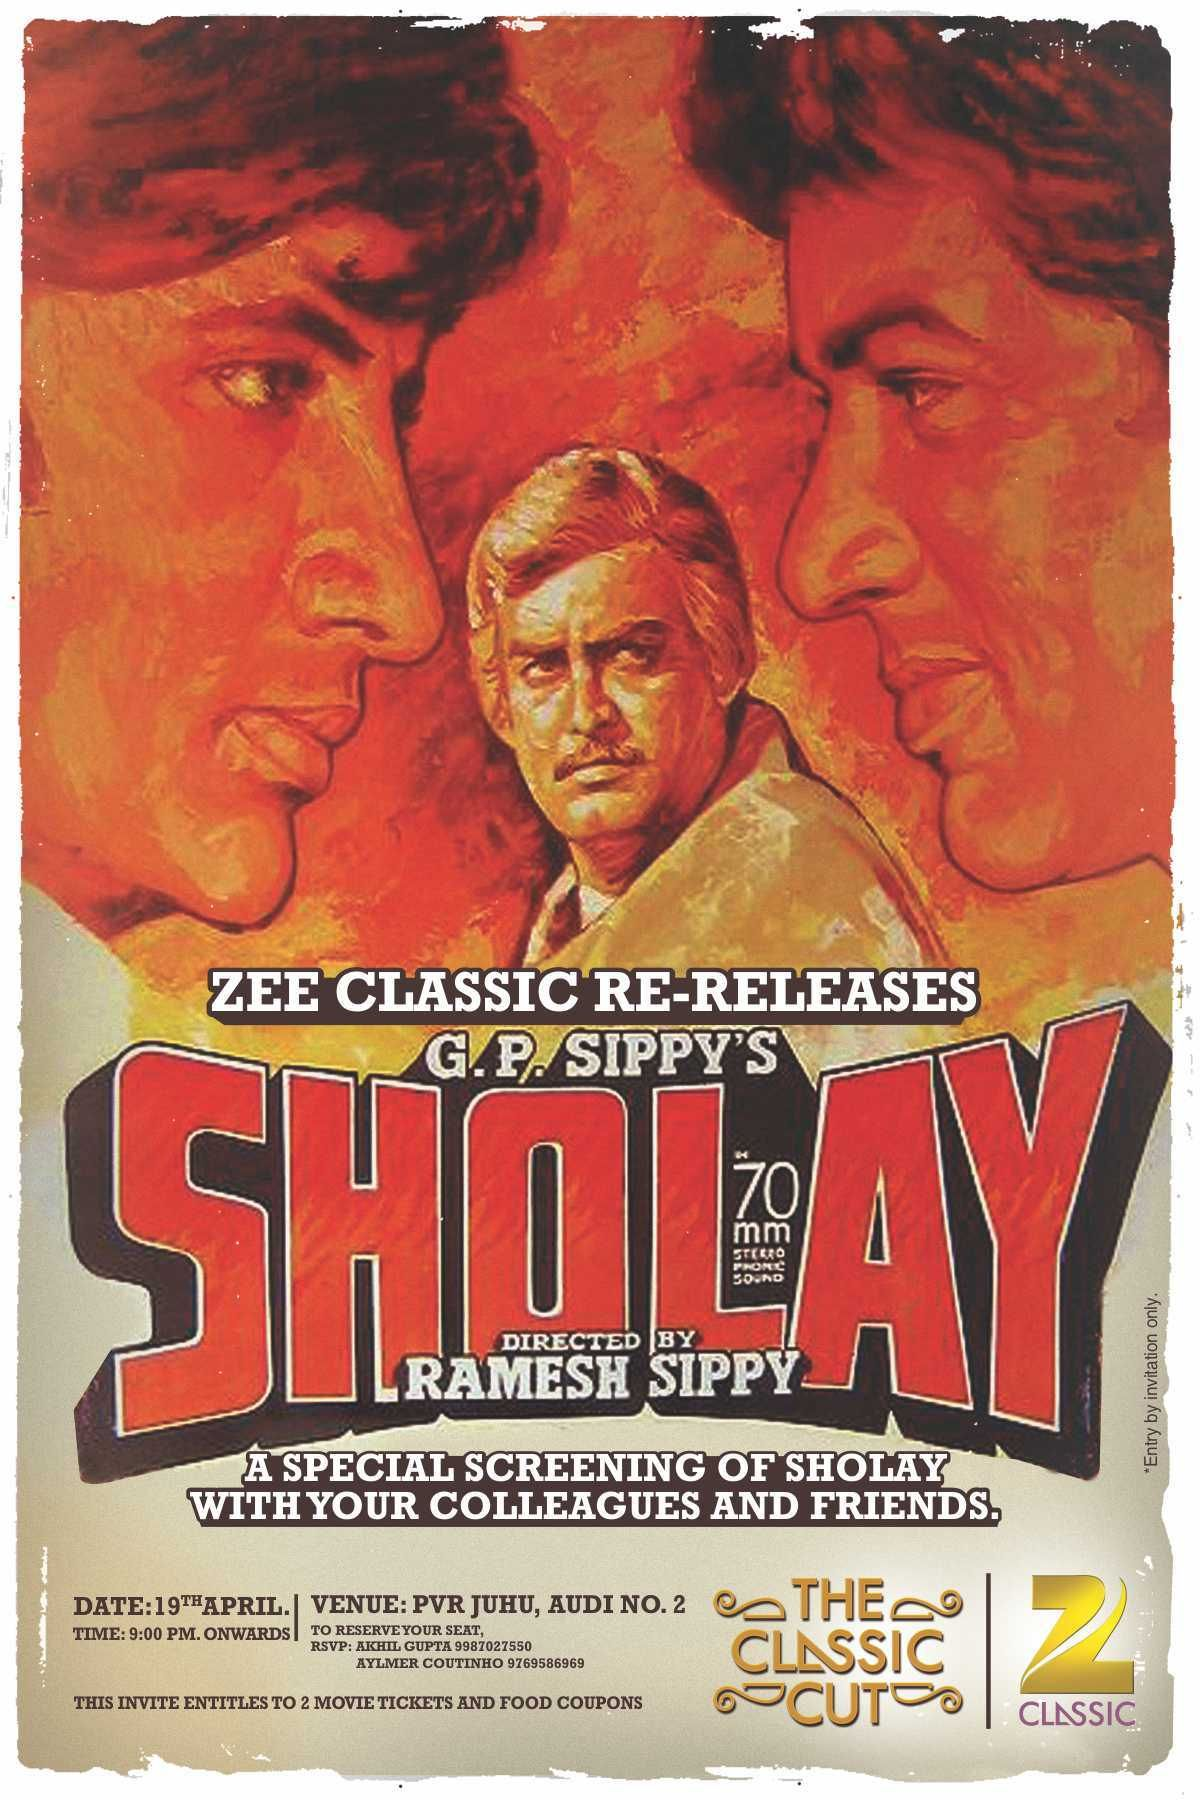 Sholay, Deewar to re-release in Delhi & Mumbai - DearCinema.com ...